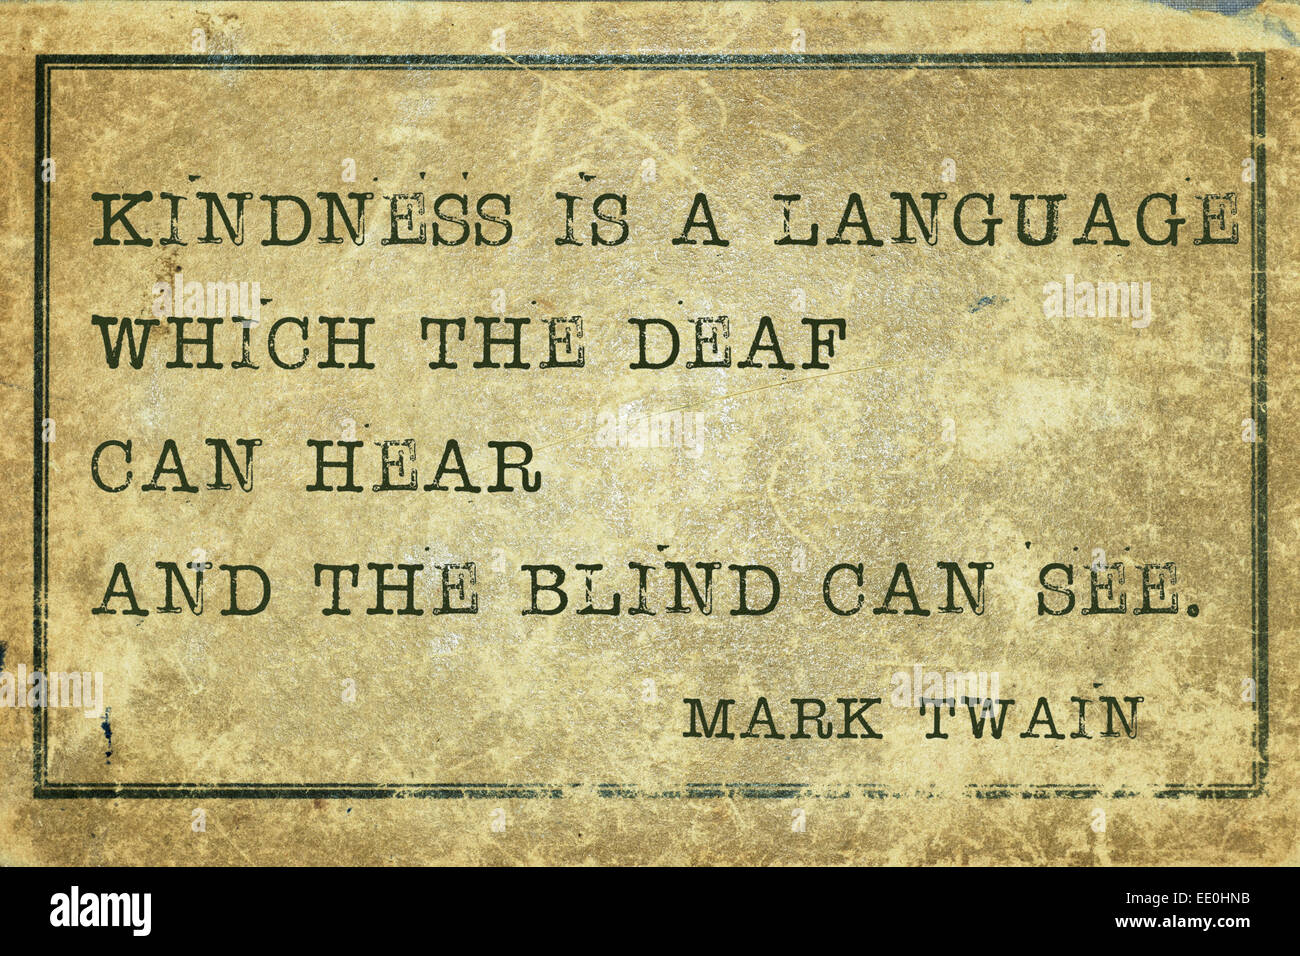 Mark Twain Quotes Kindness Is A Language  Famous Mark Twain Quote Printed On Grunge